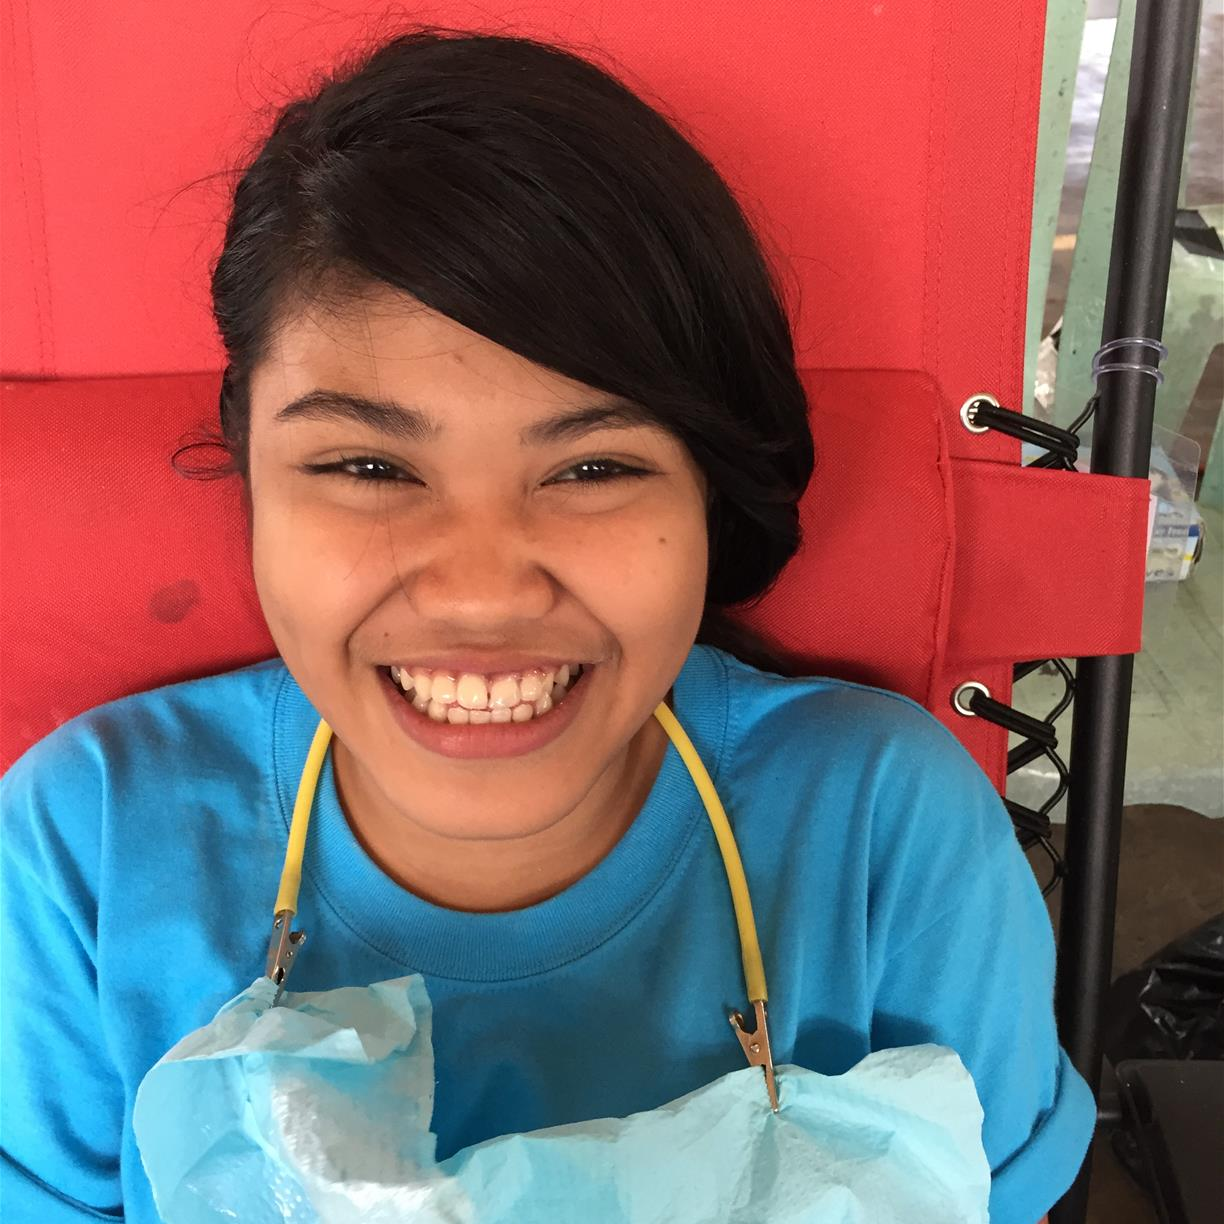 16 Year Old Dental Patient in the Philippines